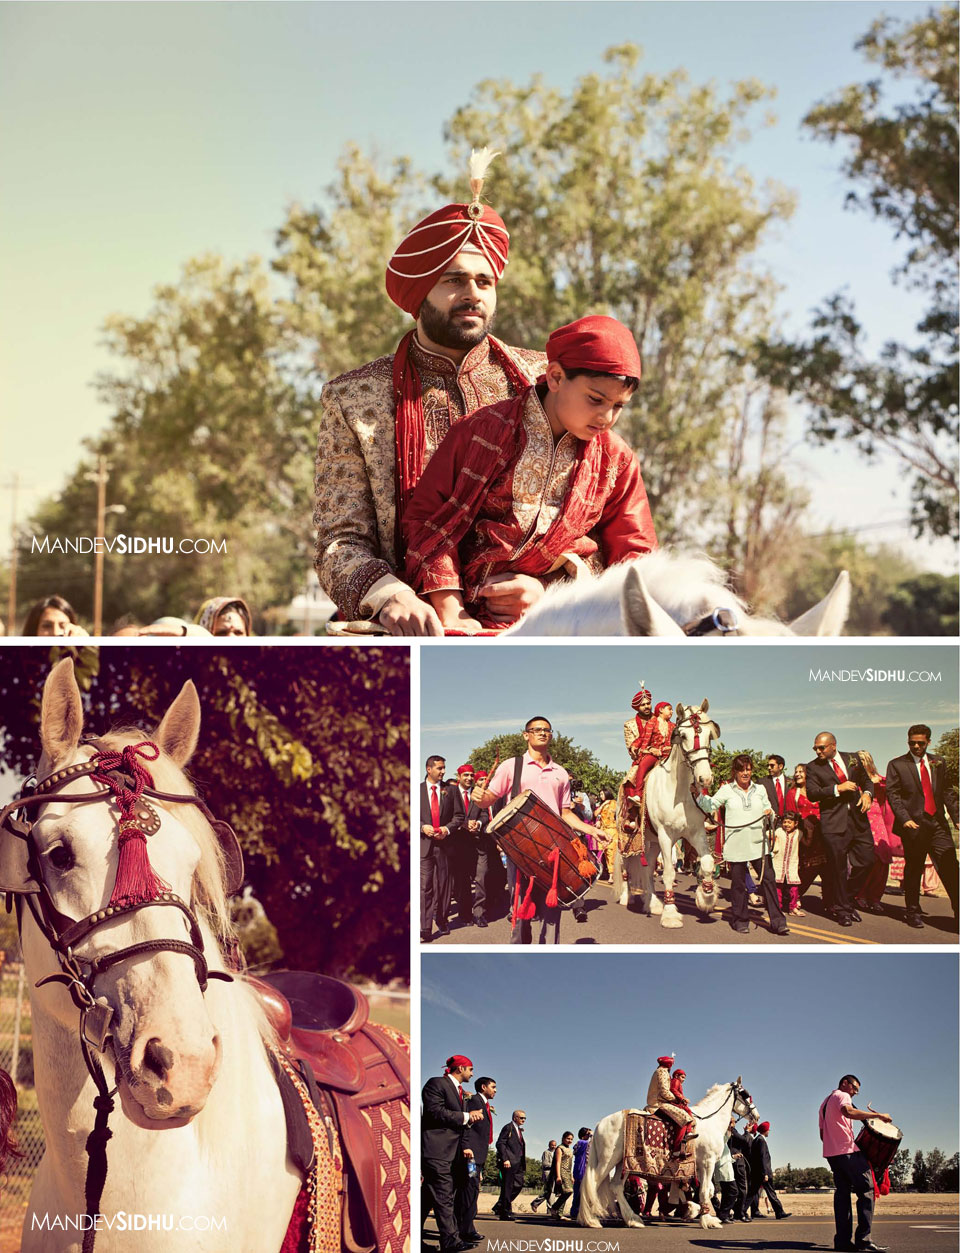 baraat is going to the gurdwara with groom on white horse